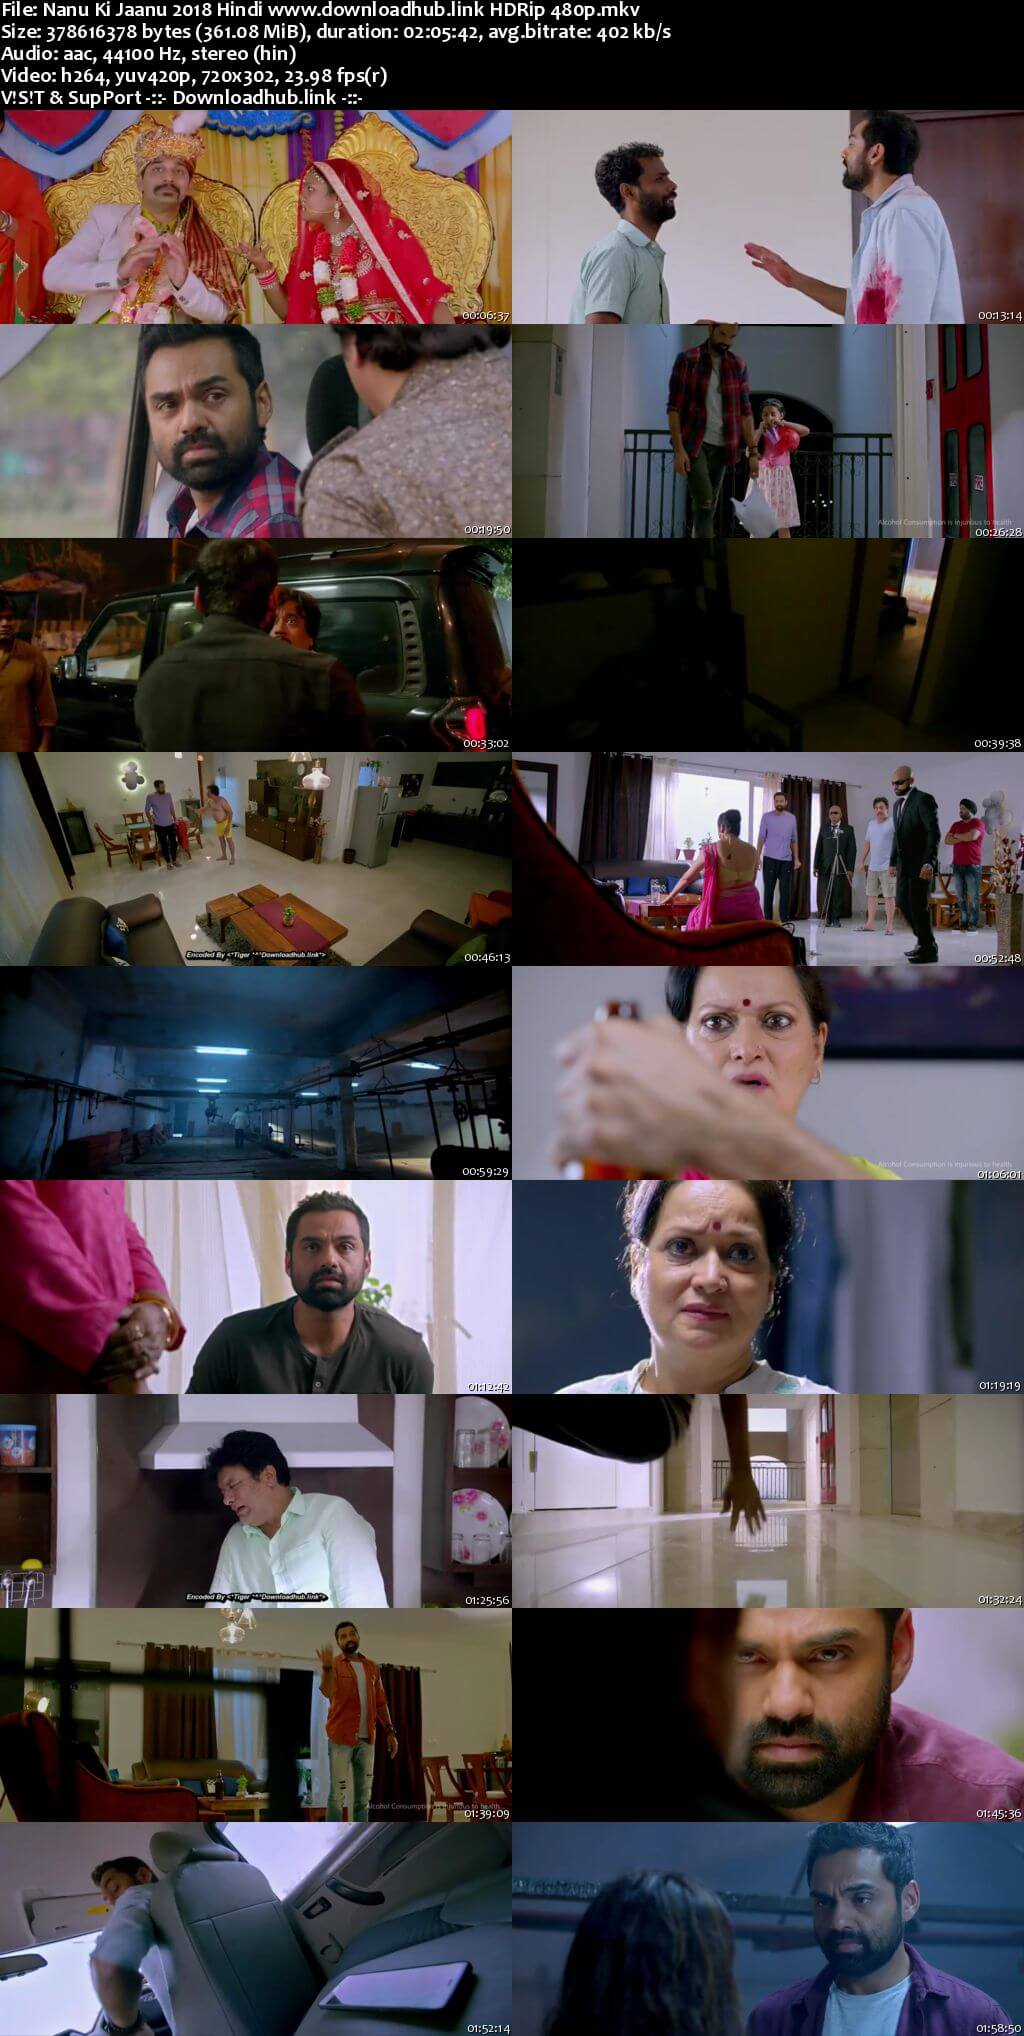 Nanu Ki Jaanu 2018 Hindi 350MB HDRip 480p